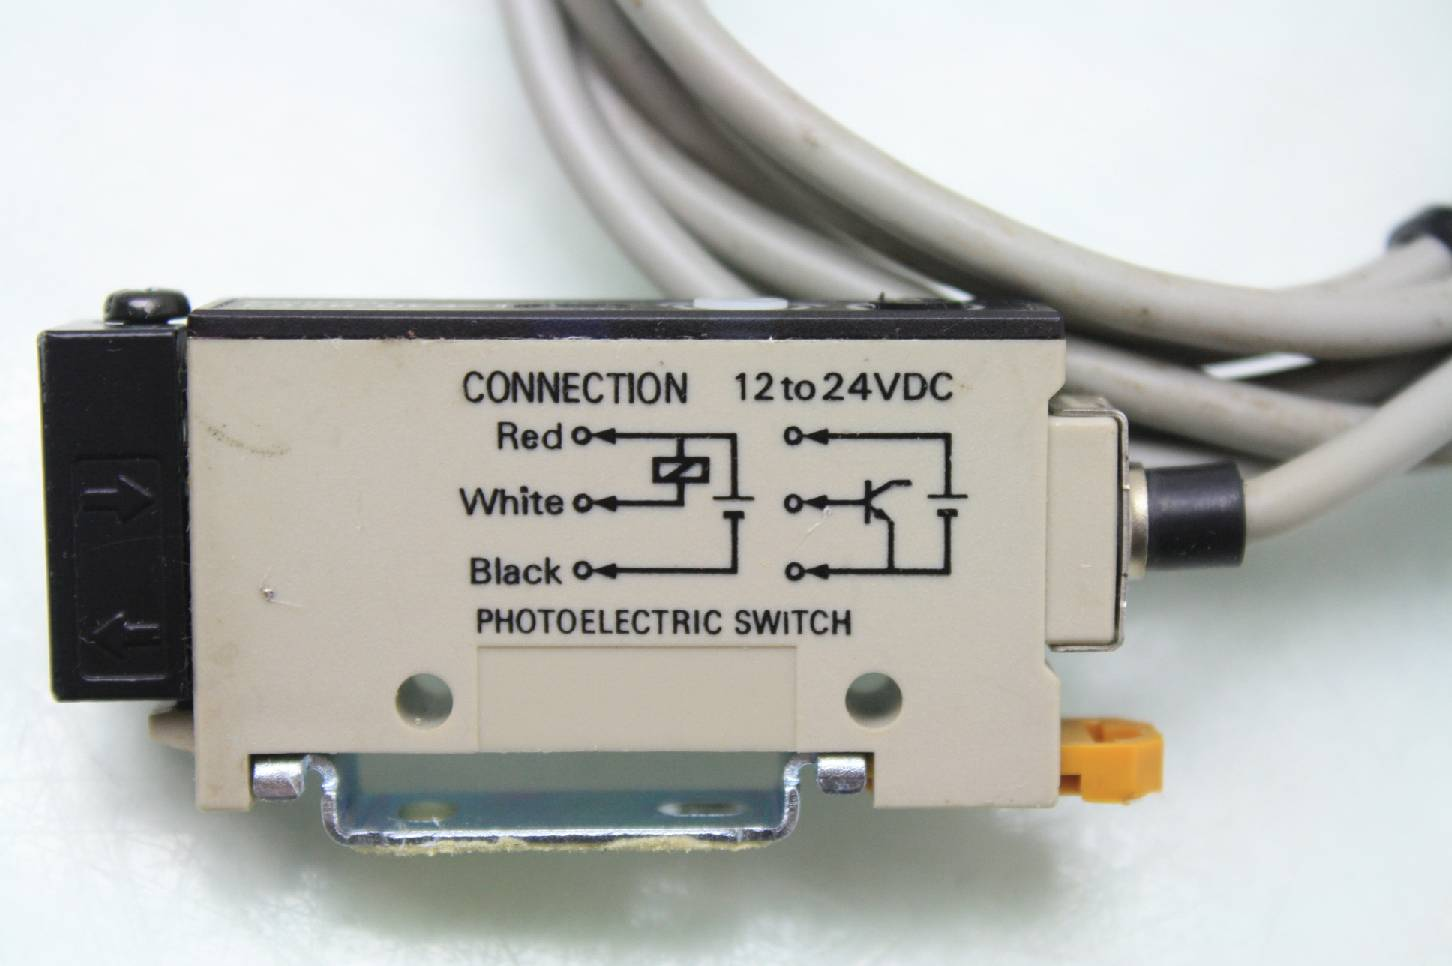 Omron E3xr He4 Fiber Optic Photoelectric Sensor Amplifier Used Switch Wiring